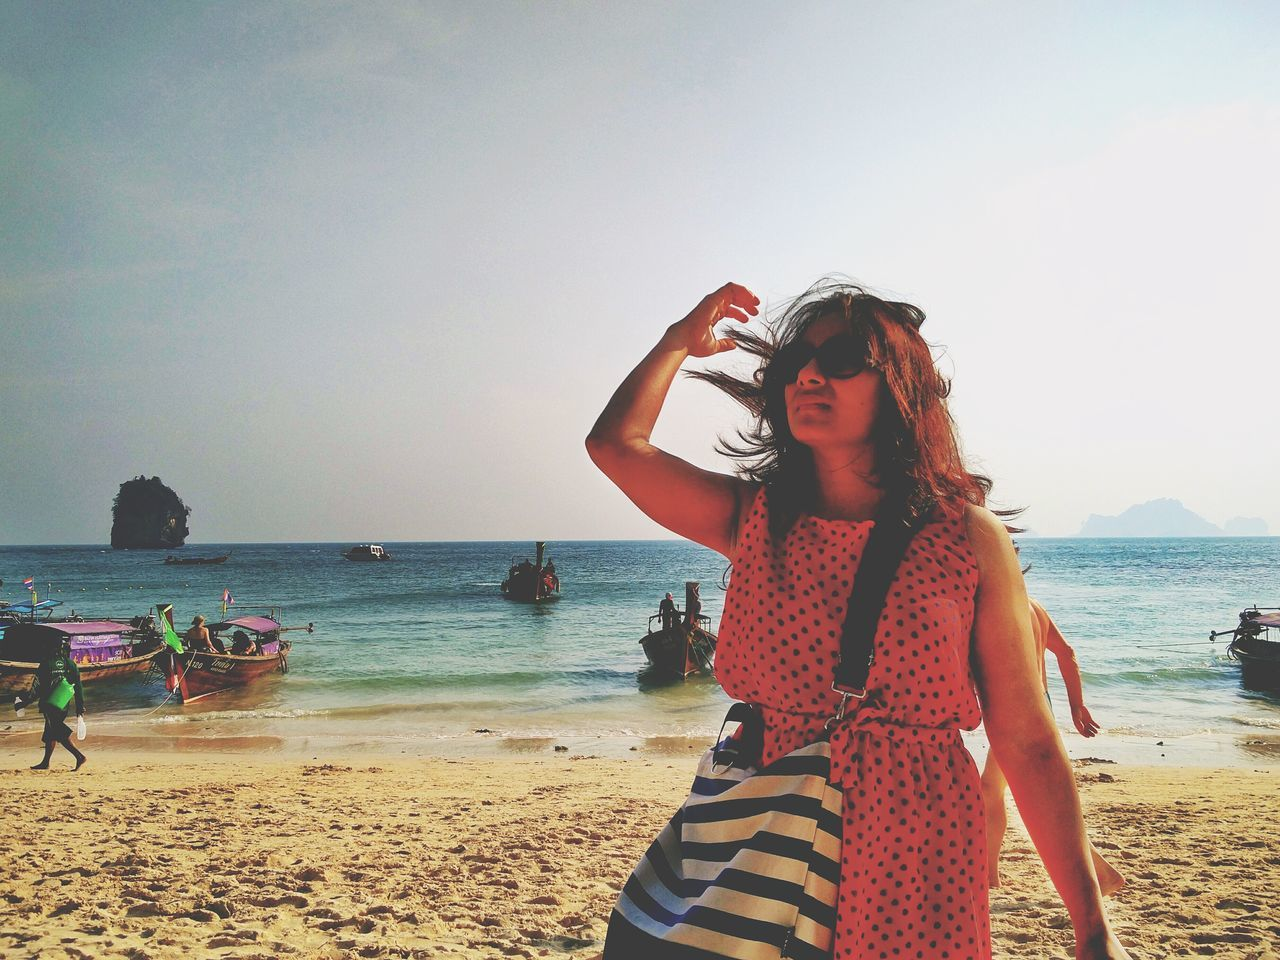 Beach Sea Sky Outdoors Horizon Over Water Clear Sky Sunset Water Vacations Only Women One Woman Only Nature Lost Girl Lost In Thought Red Dress Boats Railey Beach Thailand Resist The Great Outdoors - 2017 EyeEm Awards